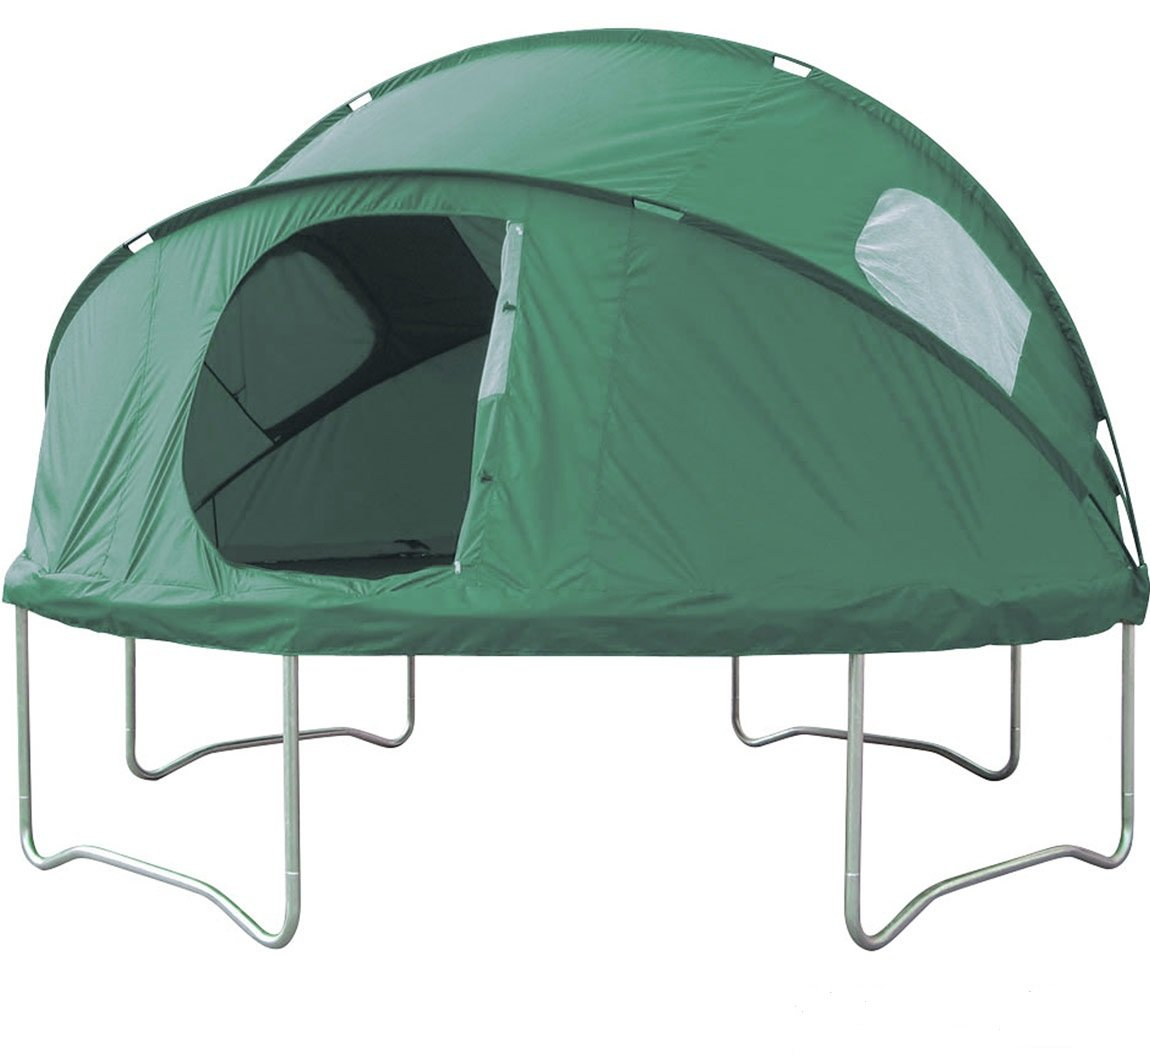 10 Foot Tr&oline Tent. For Imaginative Play Picnics and Making a Den. Amazon.co.uk Sports u0026 Outdoors  sc 1 st  Amazon UK & 10 Foot Trampoline Tent. For Imaginative Play Picnics and Making ...